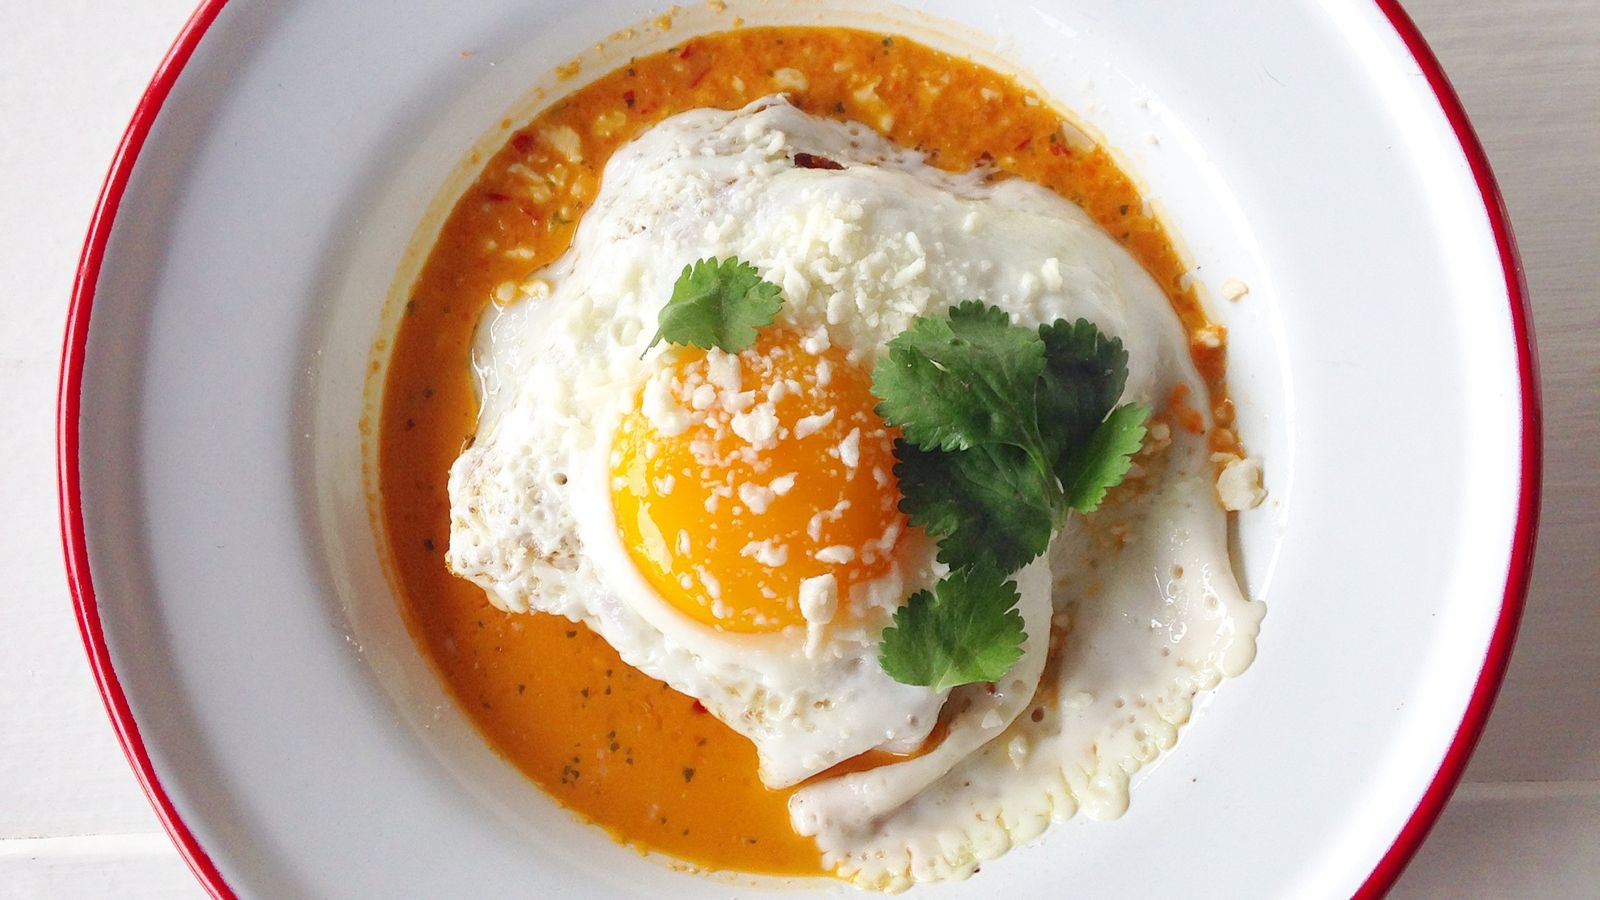 The 12 best looking egg dishes in los angeles eater la for Ted s fish fry menu